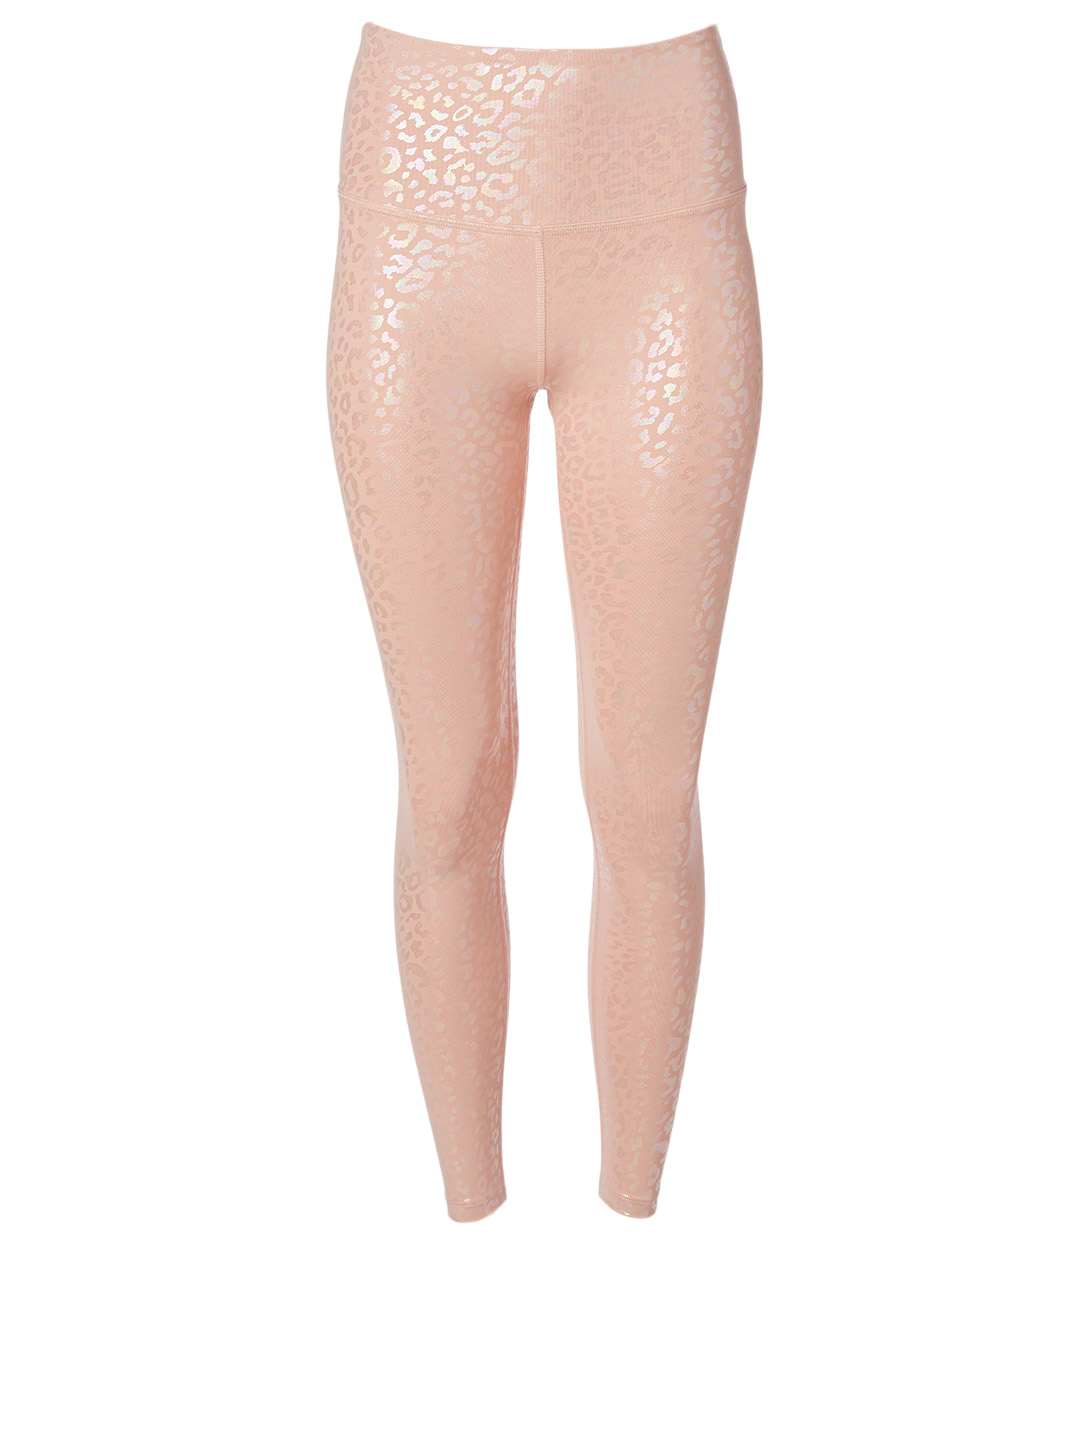 BEYOND YOGA High-Waisted Midi Leggings In Leopard Foil Print Women's Pink